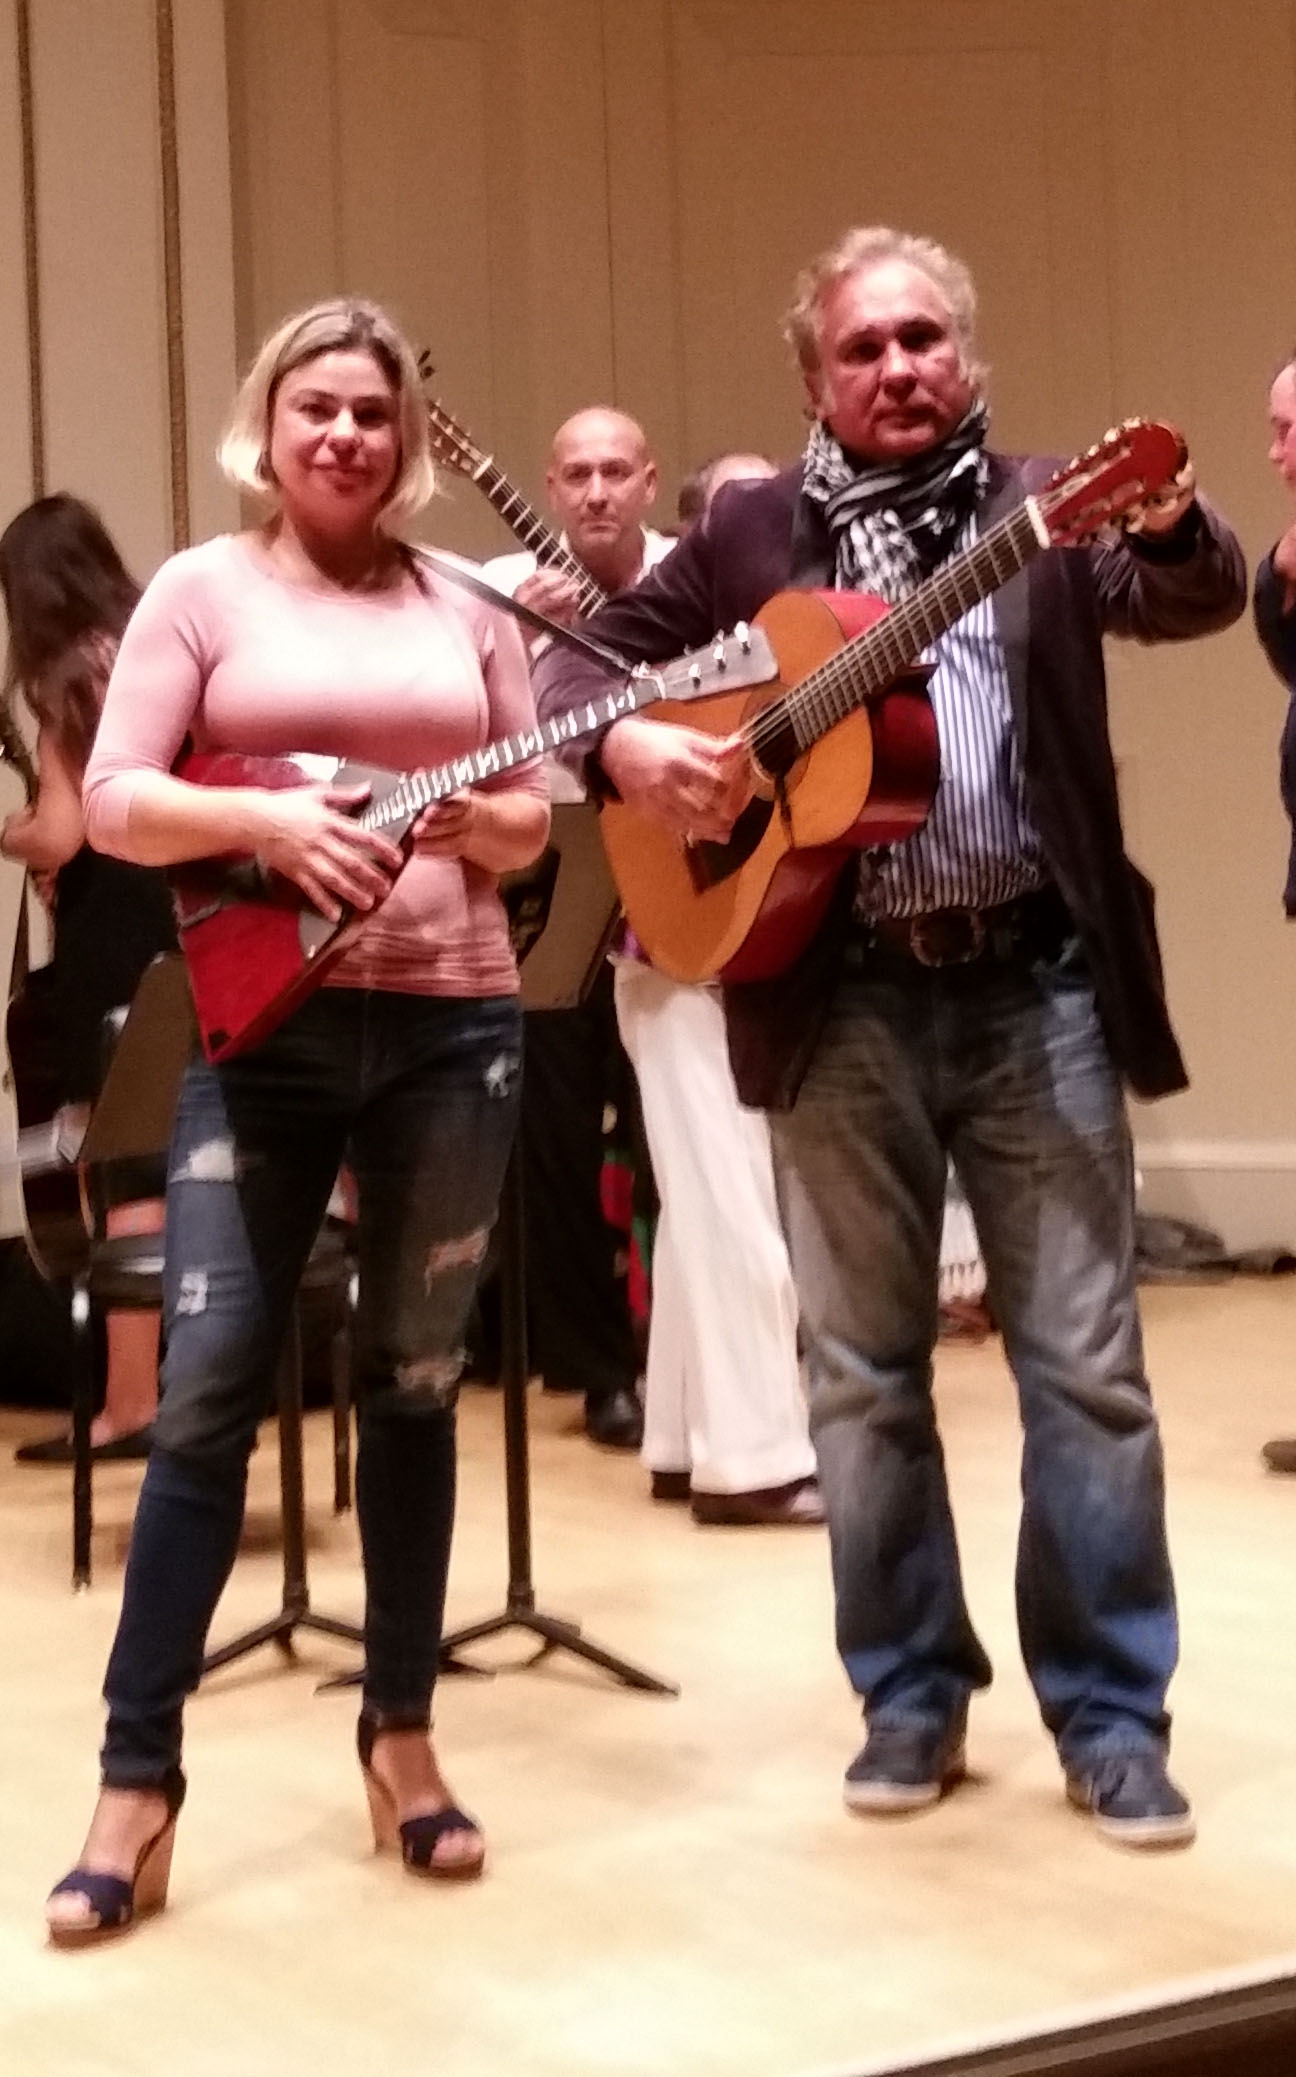 Moscow Gypsy Army, Elina Karokhina, Vasily Yankovich-Romani, rehearsal at the Carnegie Hall in New York City